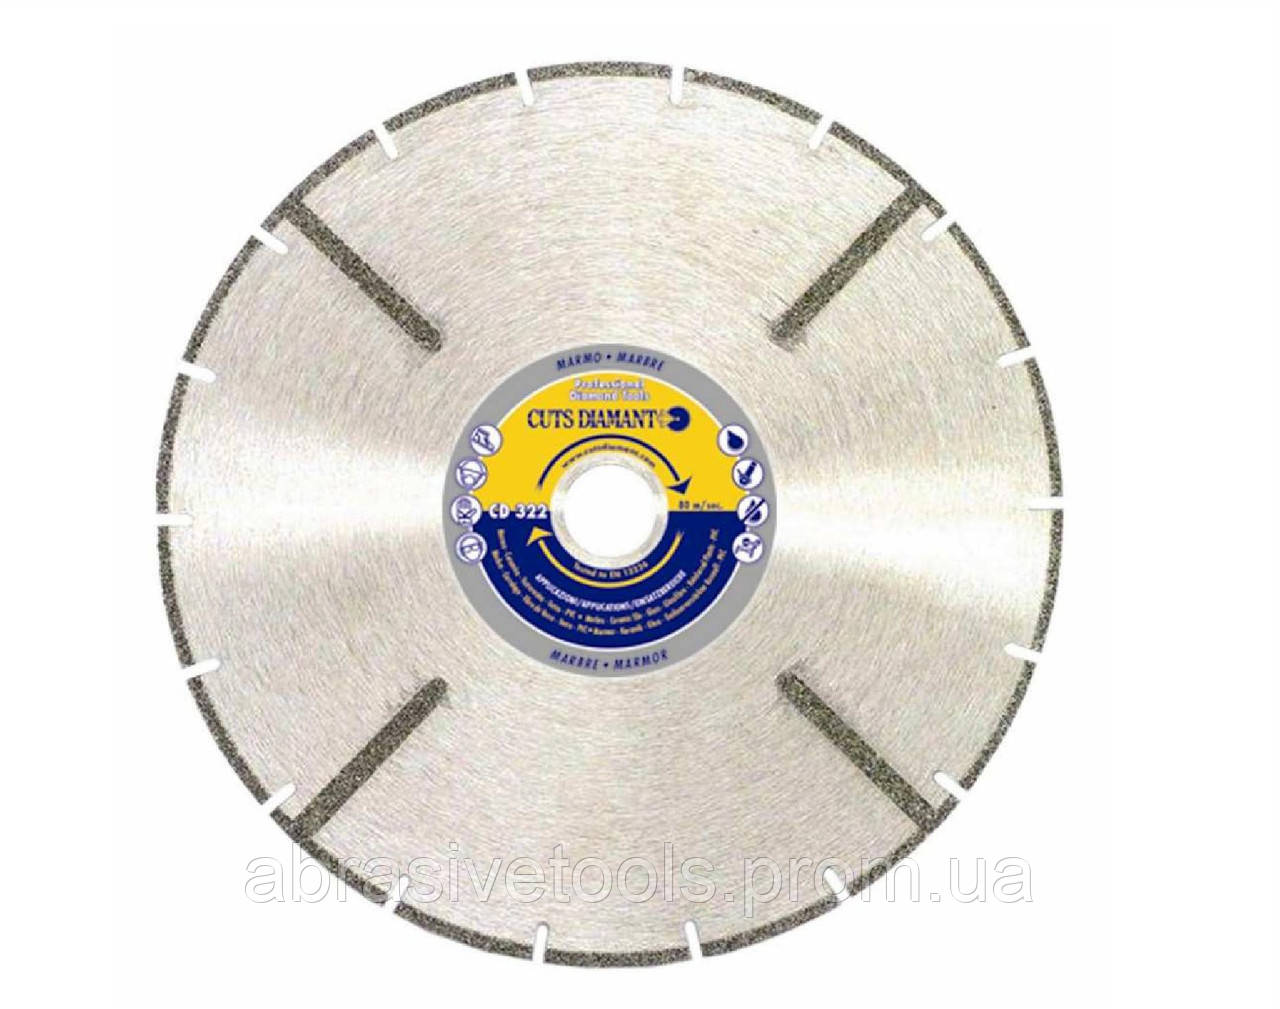 CD 322 ELECTROPLATED